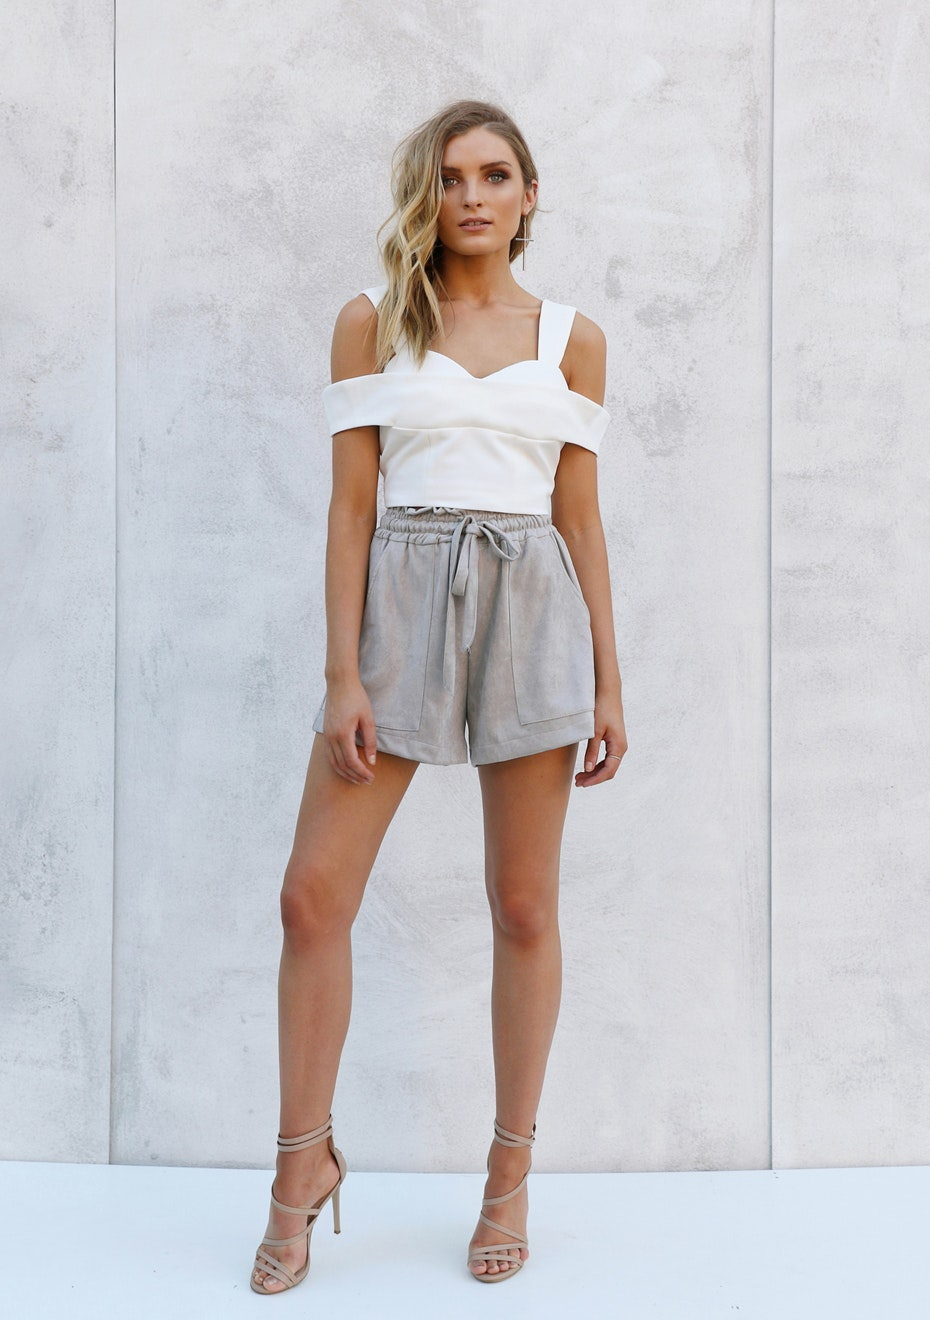 Madison - CAMILLA CROP - WHITE